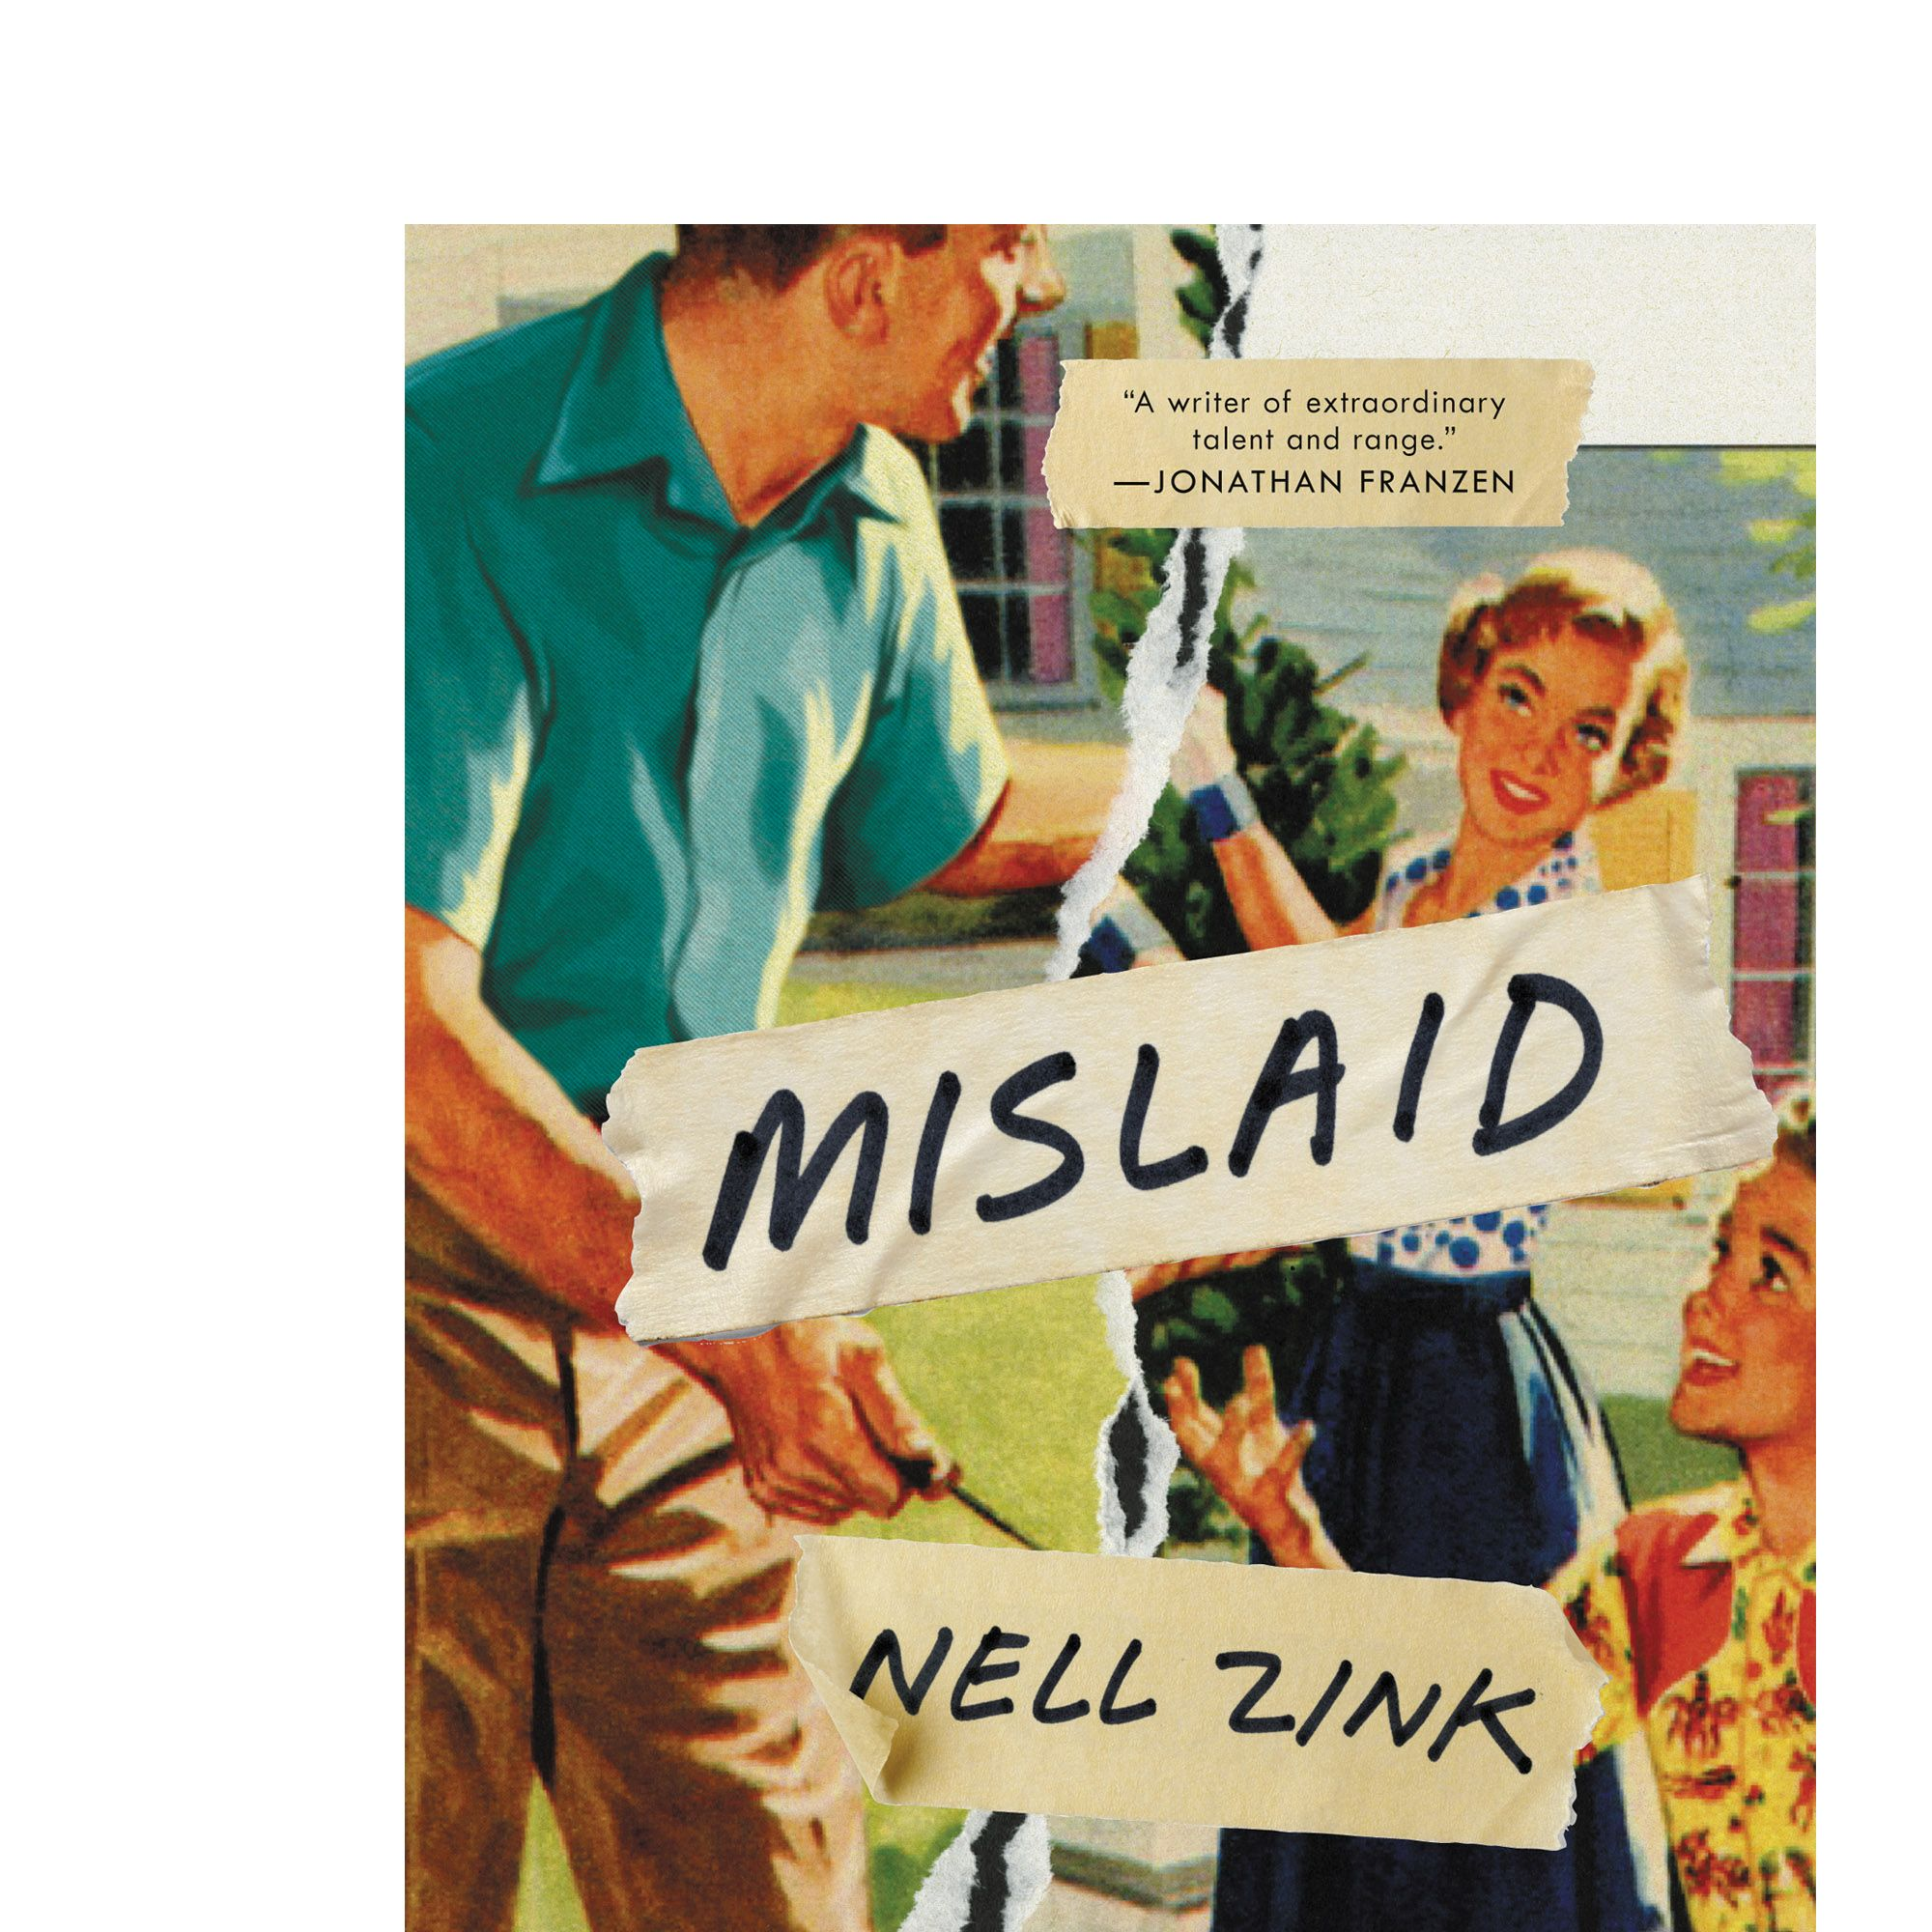 """From the author of <em>The Wallcreeper </em>comes a startlingly original novel about the dissolution of an eccentric American family. <a target=""""_blank"""" href=""""http://www.amazon.com/Mislaid-A-Novel-Nell-Zink/dp/0062364774""""><em>Mislaid</em></a> begins at a university in 1960s Virginia, where an impressionable freshman, Peggy, falls for her professor, and powerful poet, Lee. Her unplanned pregnancy results in an ill-fated marriage and dysfunctional family life. Peggy ultimately flees with her daughter to start anew, leaving her son behind. Years later the children must reconcile with their past and the complexities of race, sexual identity, and desire. <em>Out with Ecco May 19. </em>"""